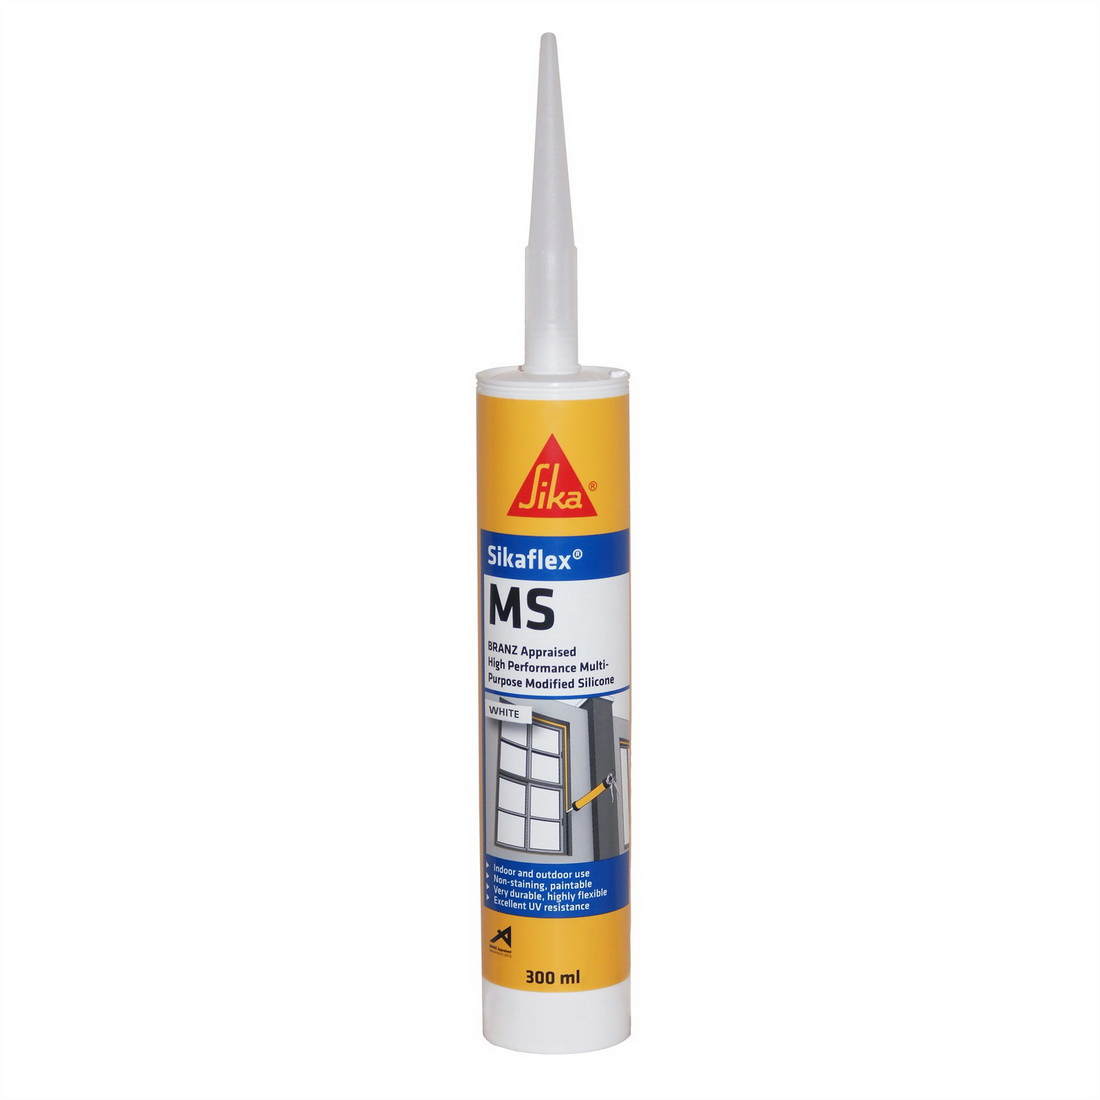 Sikaflex MS Crystal Clear 300ml modified Silicone sealant